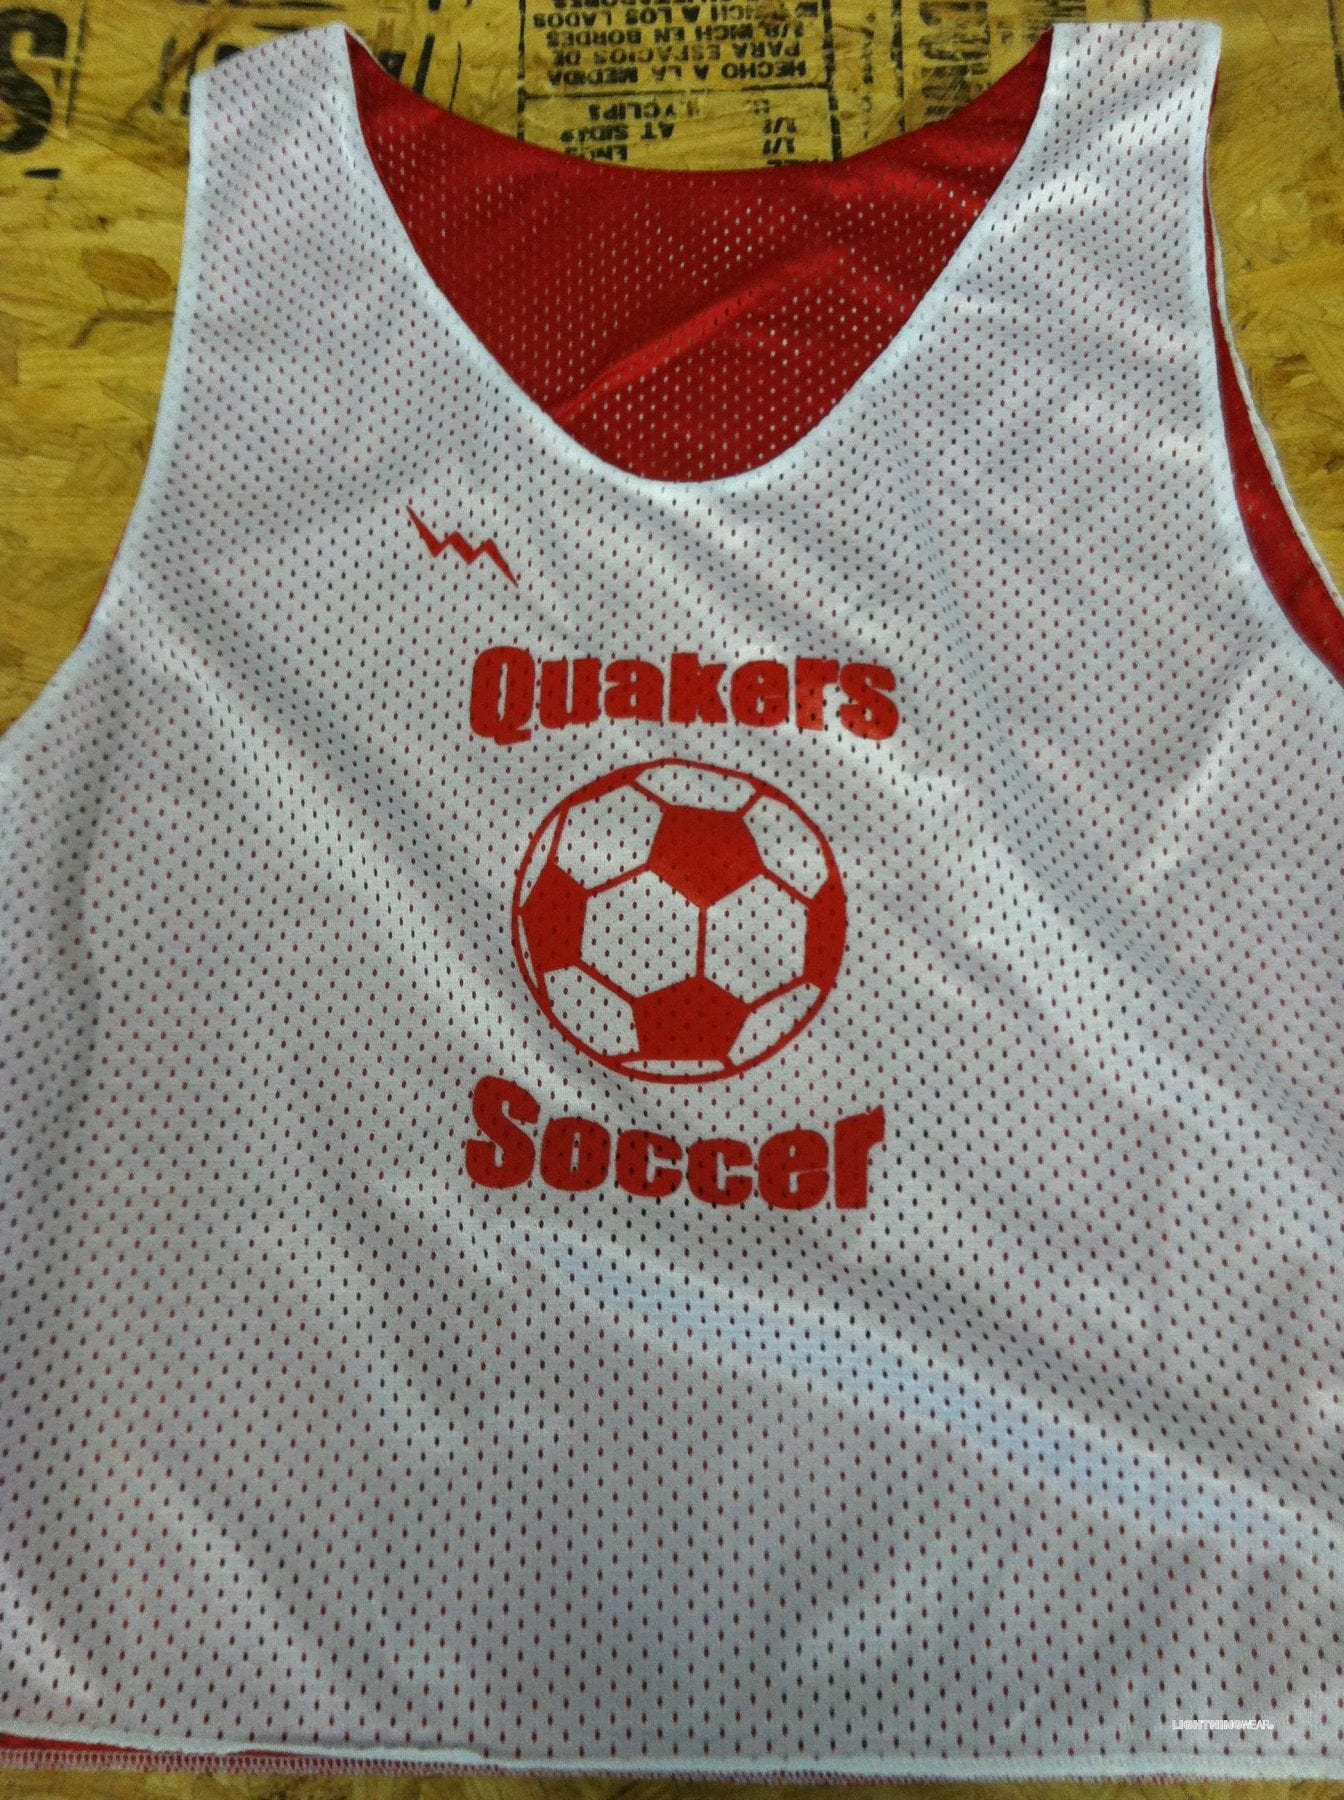 quakers soccer pinnies